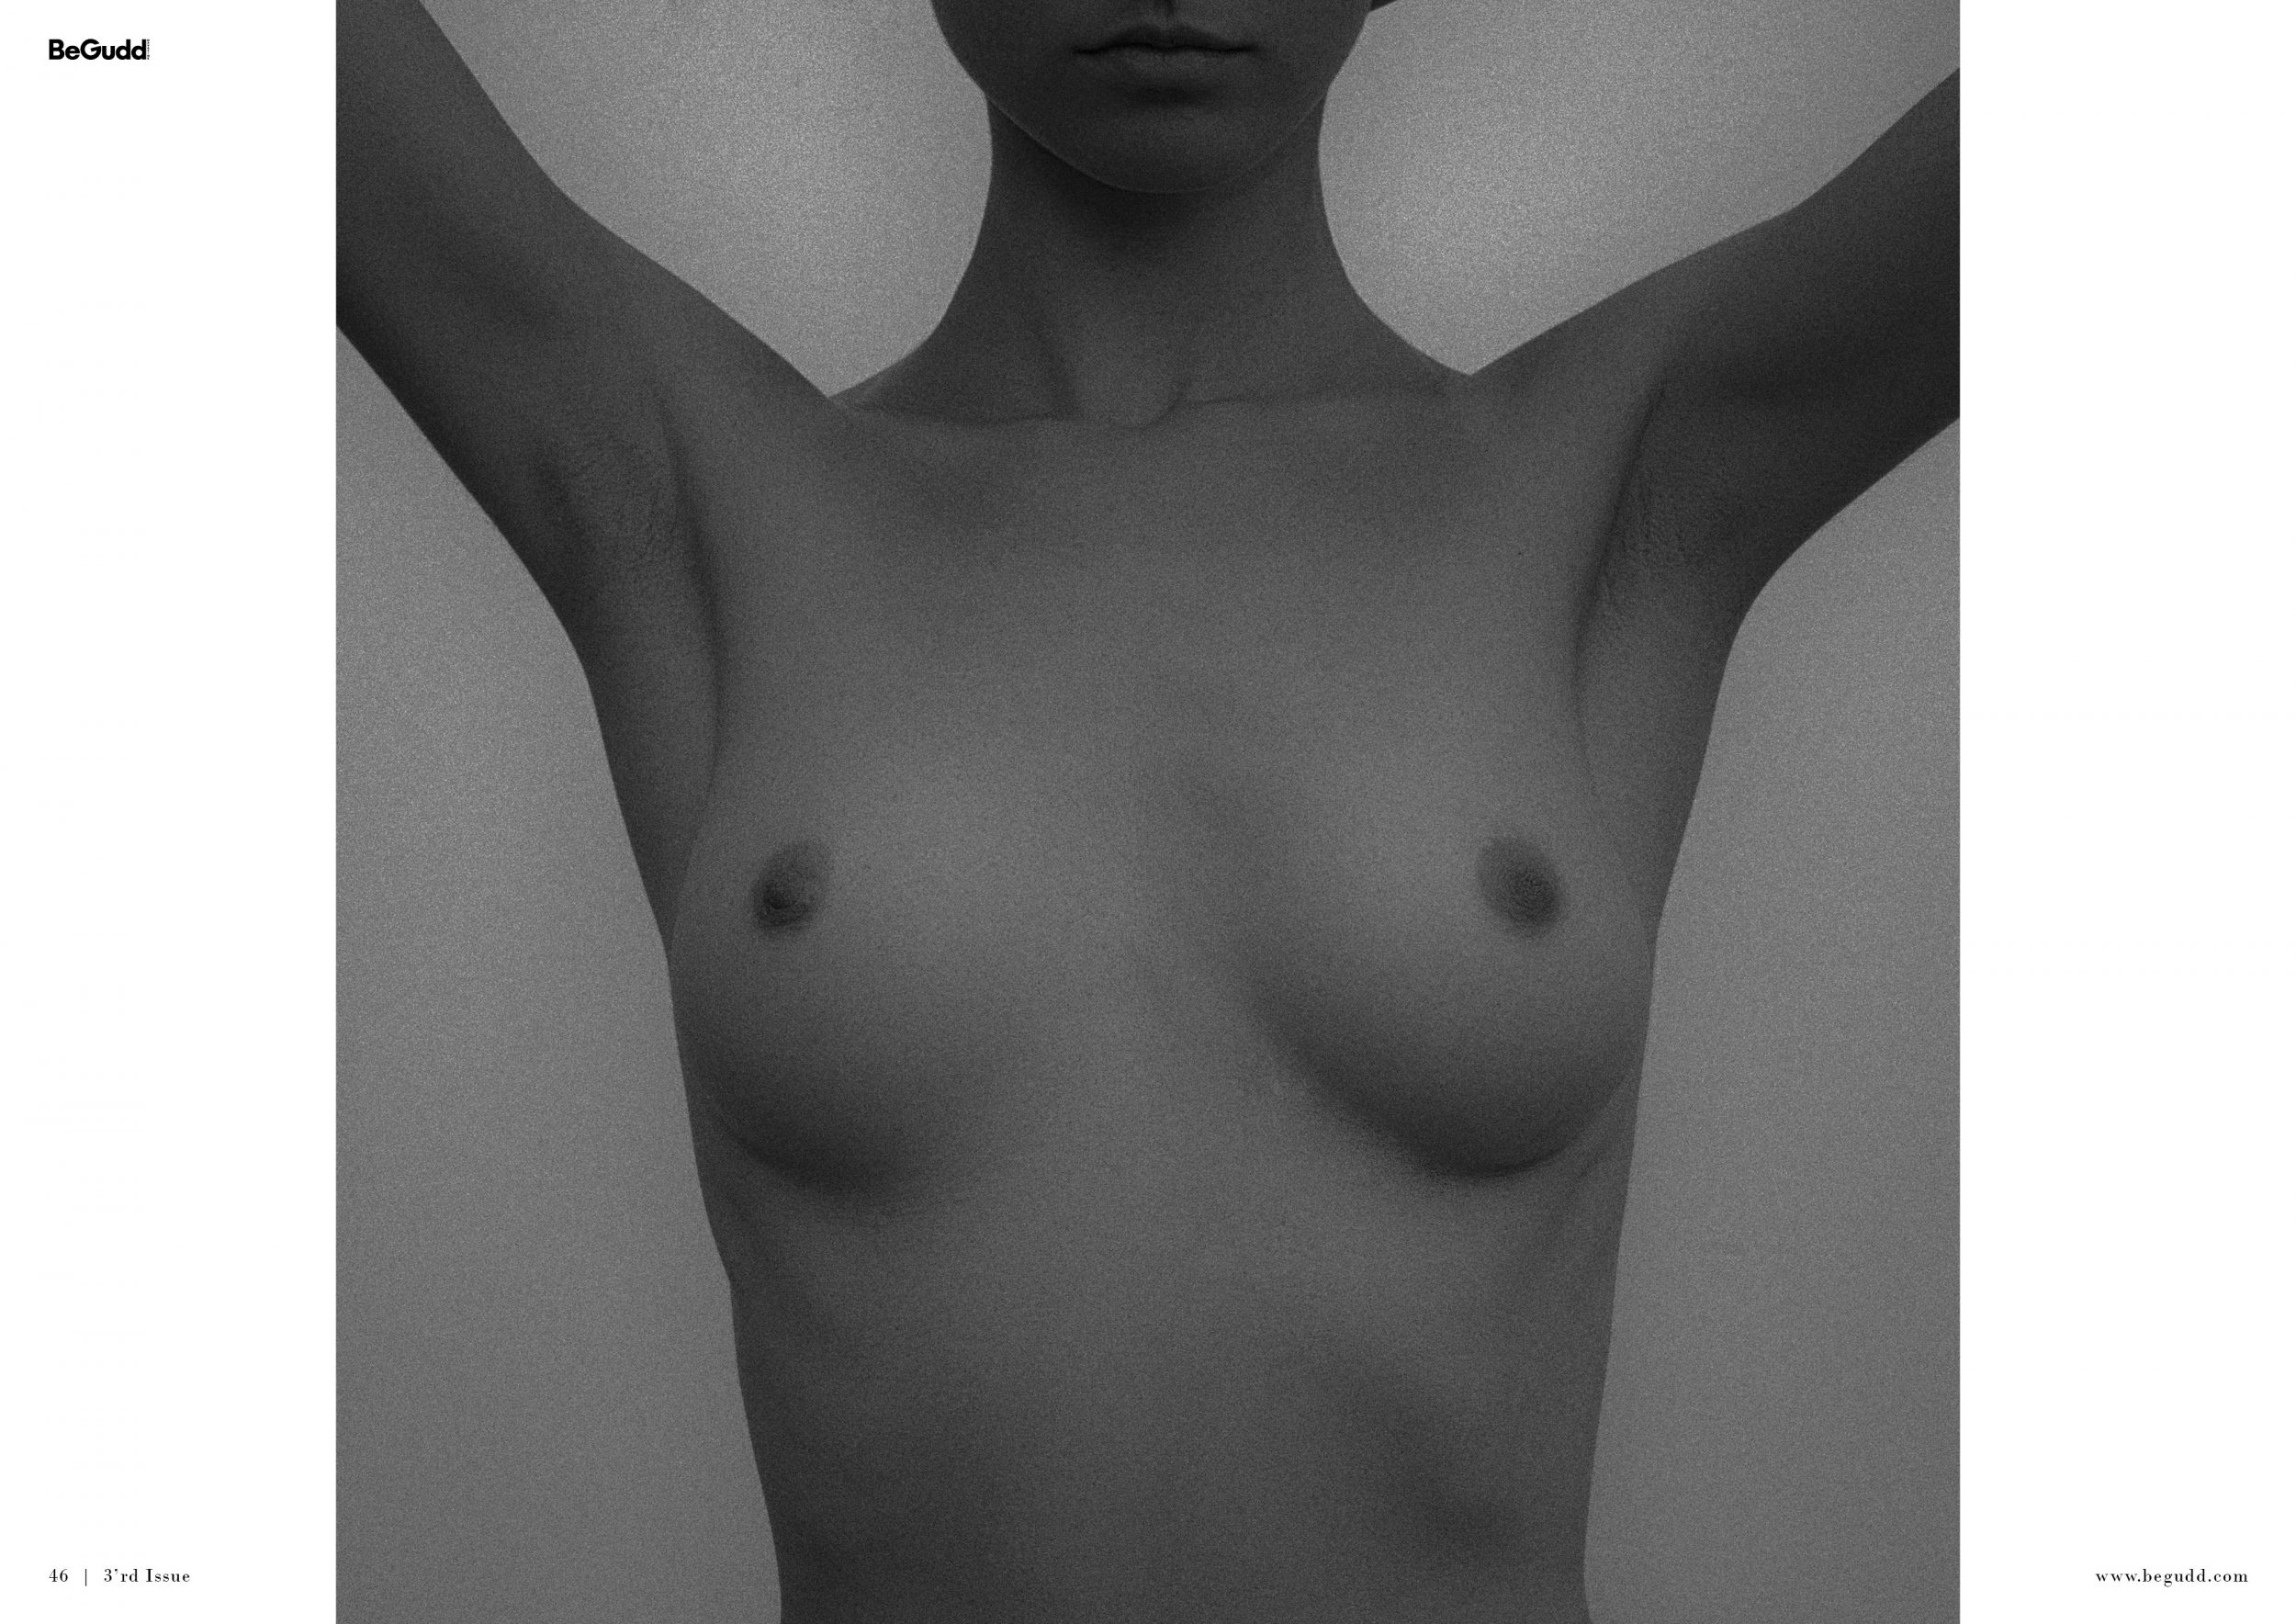 BeGudd-Magazine-artistic-nude-body-shapes-black-and-white-denis-savescu-timisoara-03